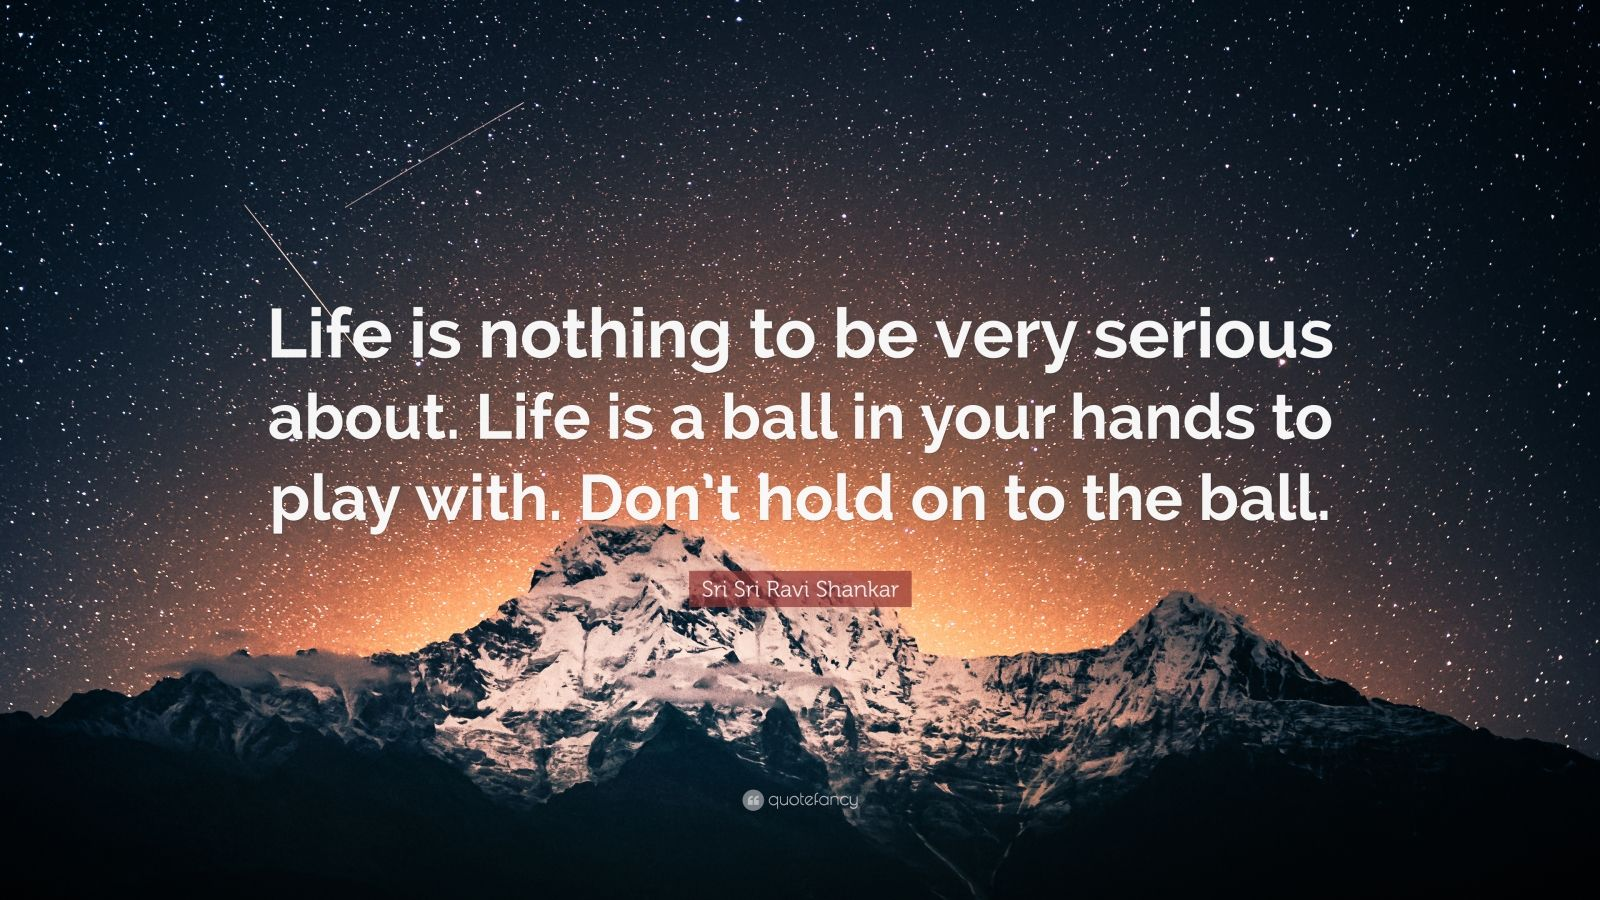 """Sri Sri Ravi Shankar Quote: """"Life is nothing to be very serious about. Life is a ball in your hands to play with. Don't hold on to the ball."""""""